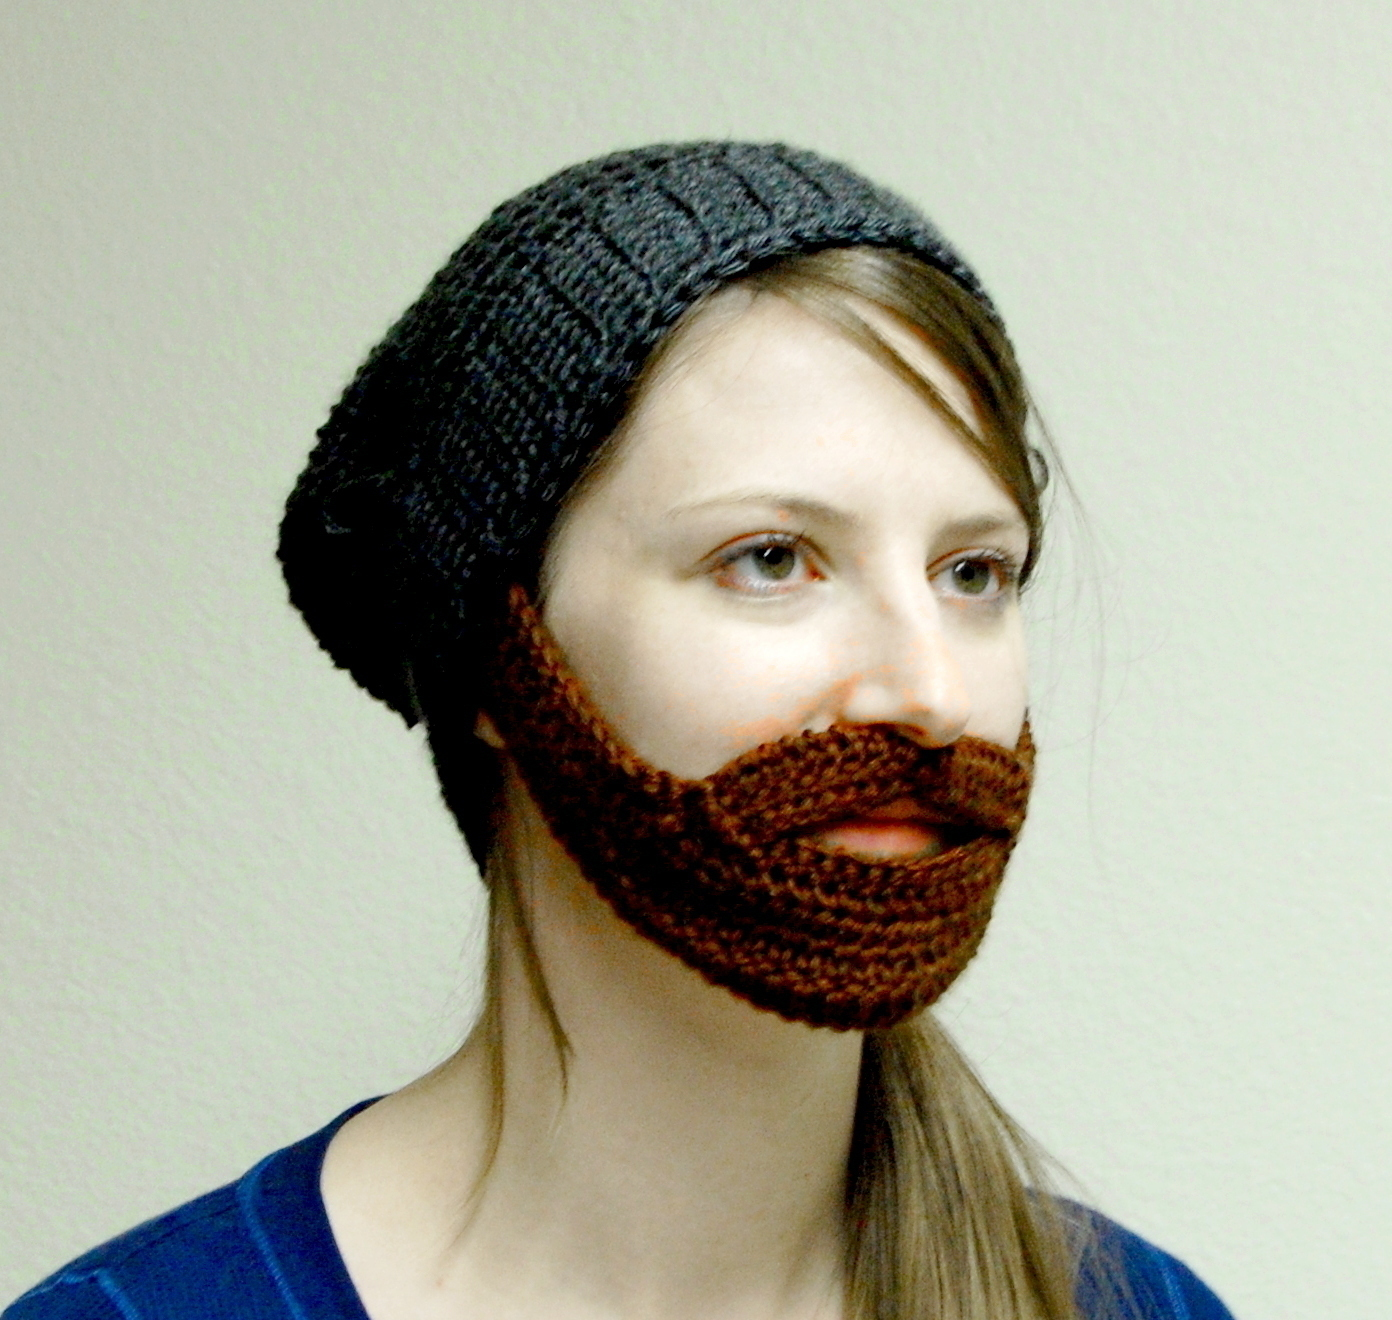 e52da0e7 Awesome Beard Beanie Crochet Pattern . Make a bearded hat in under 60  minutes by crocheting